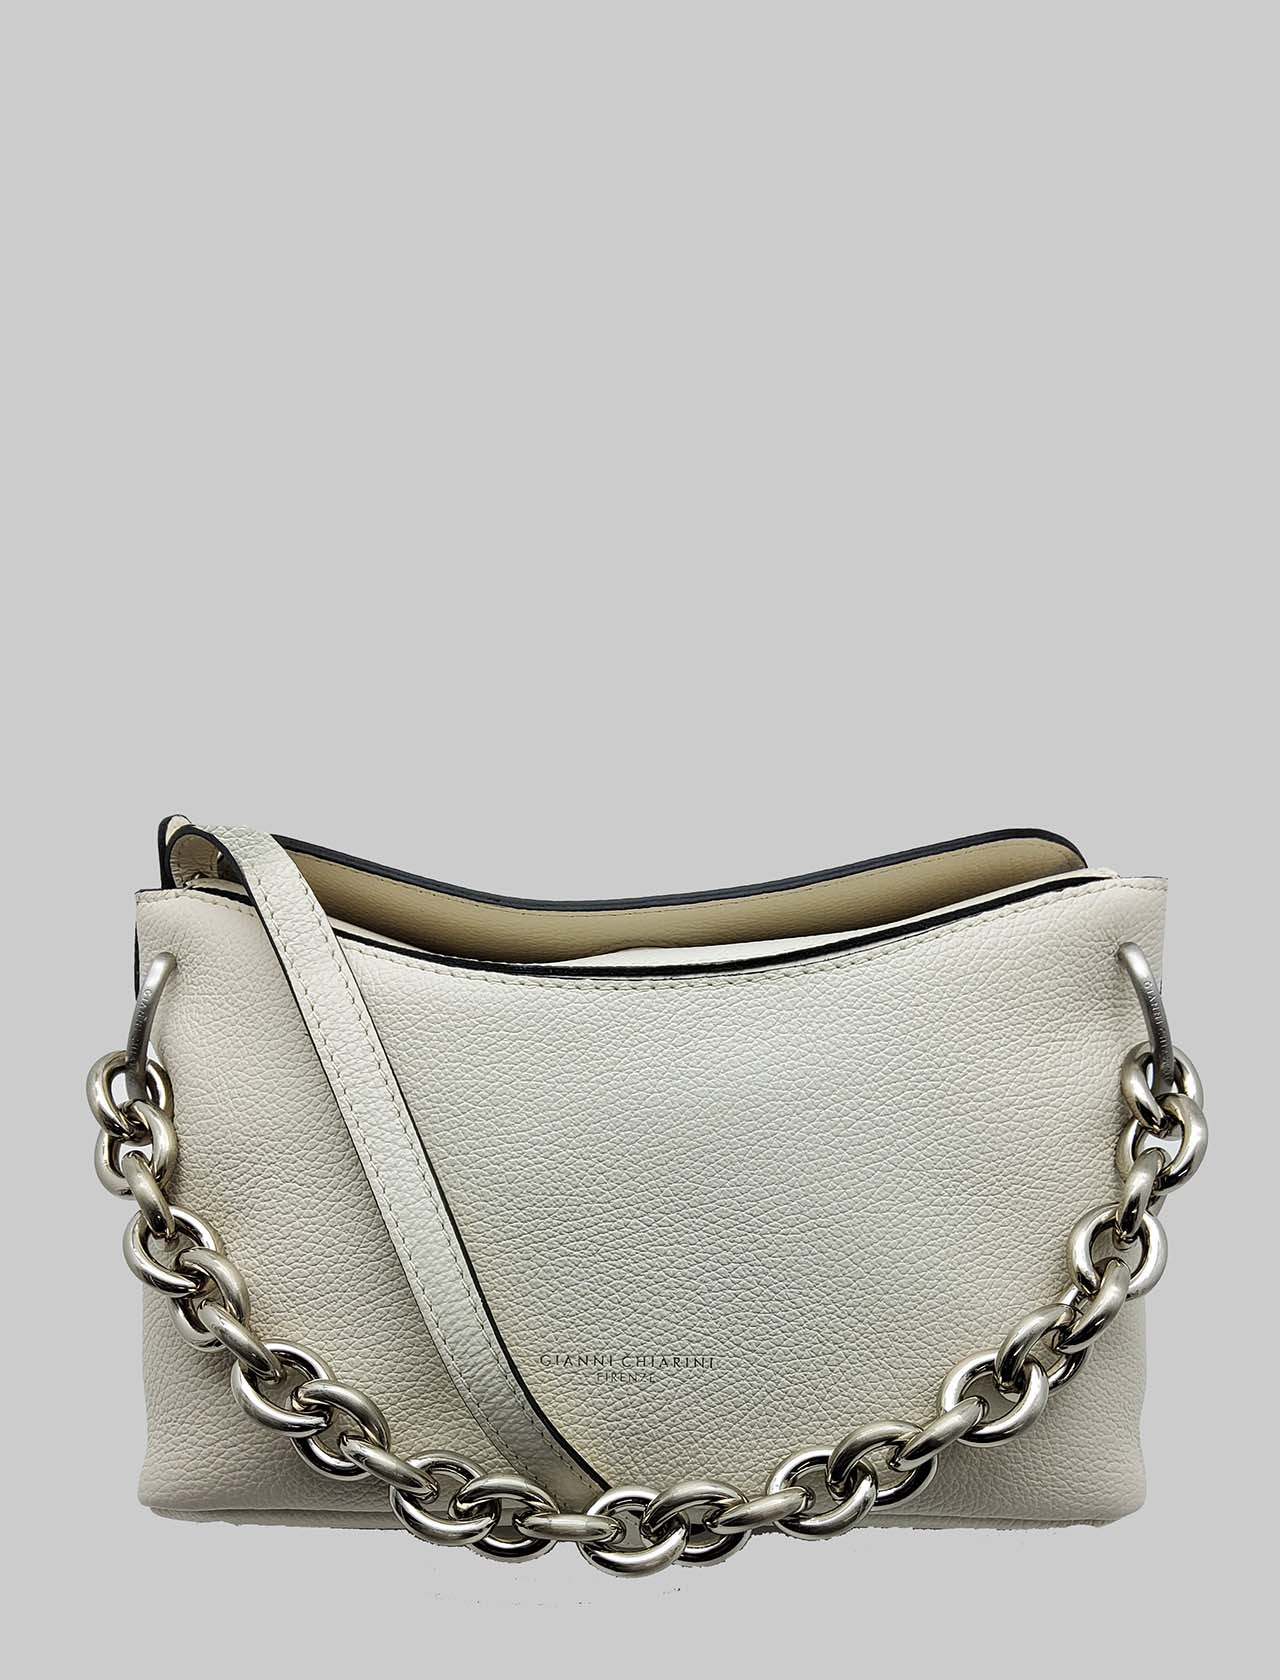 Sophia Woman Shoulder Bag In Cream Leather And Silver Chain With Adjustable And Removable Shoulder Strap Gianni Chiarini | Bags and backpacks | BS85163890